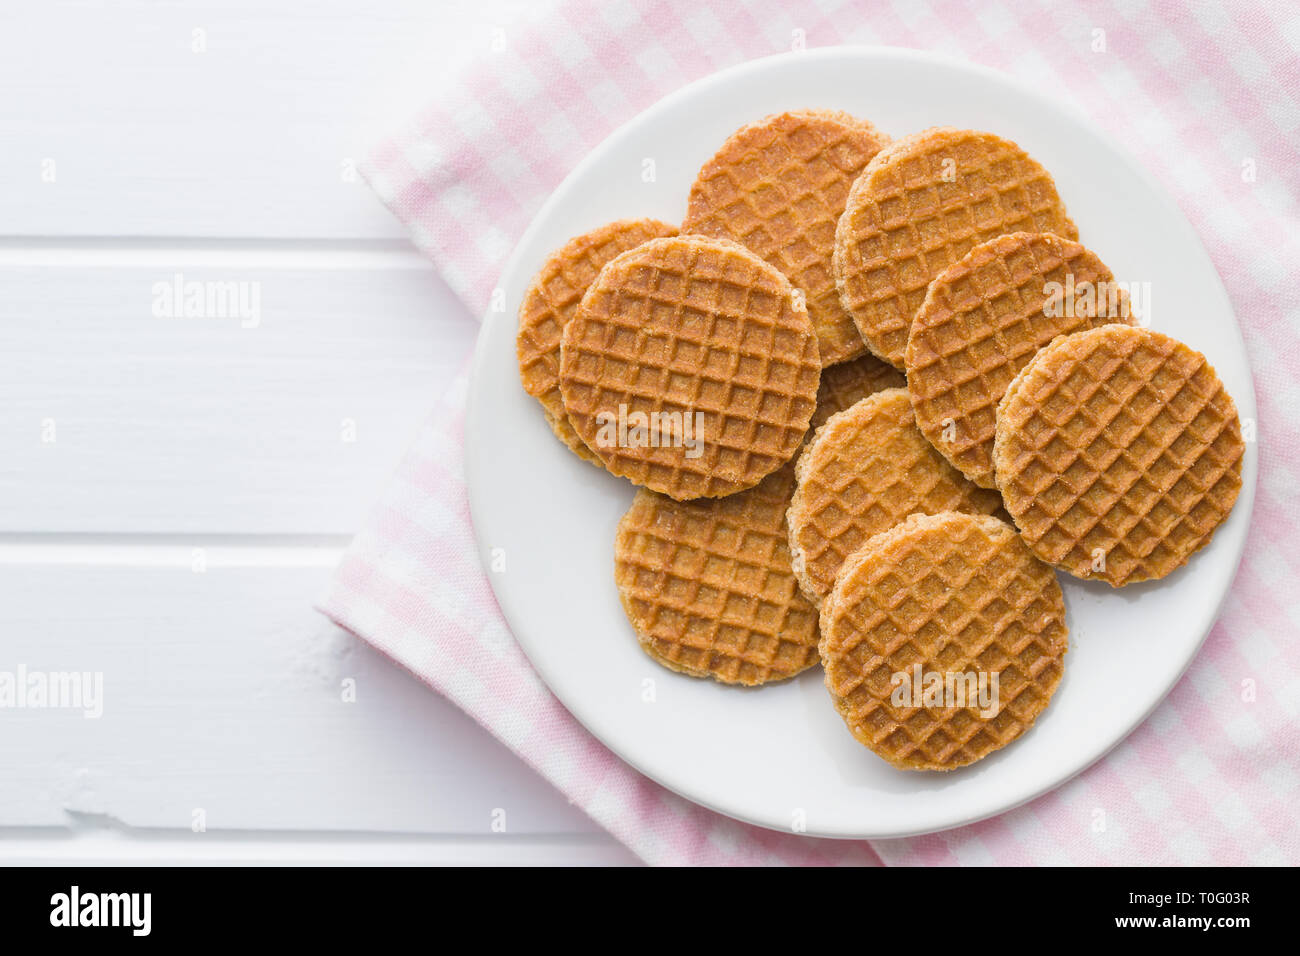 Wafer Biscuit Stock Photos Amp Wafer Biscuit Stock Images